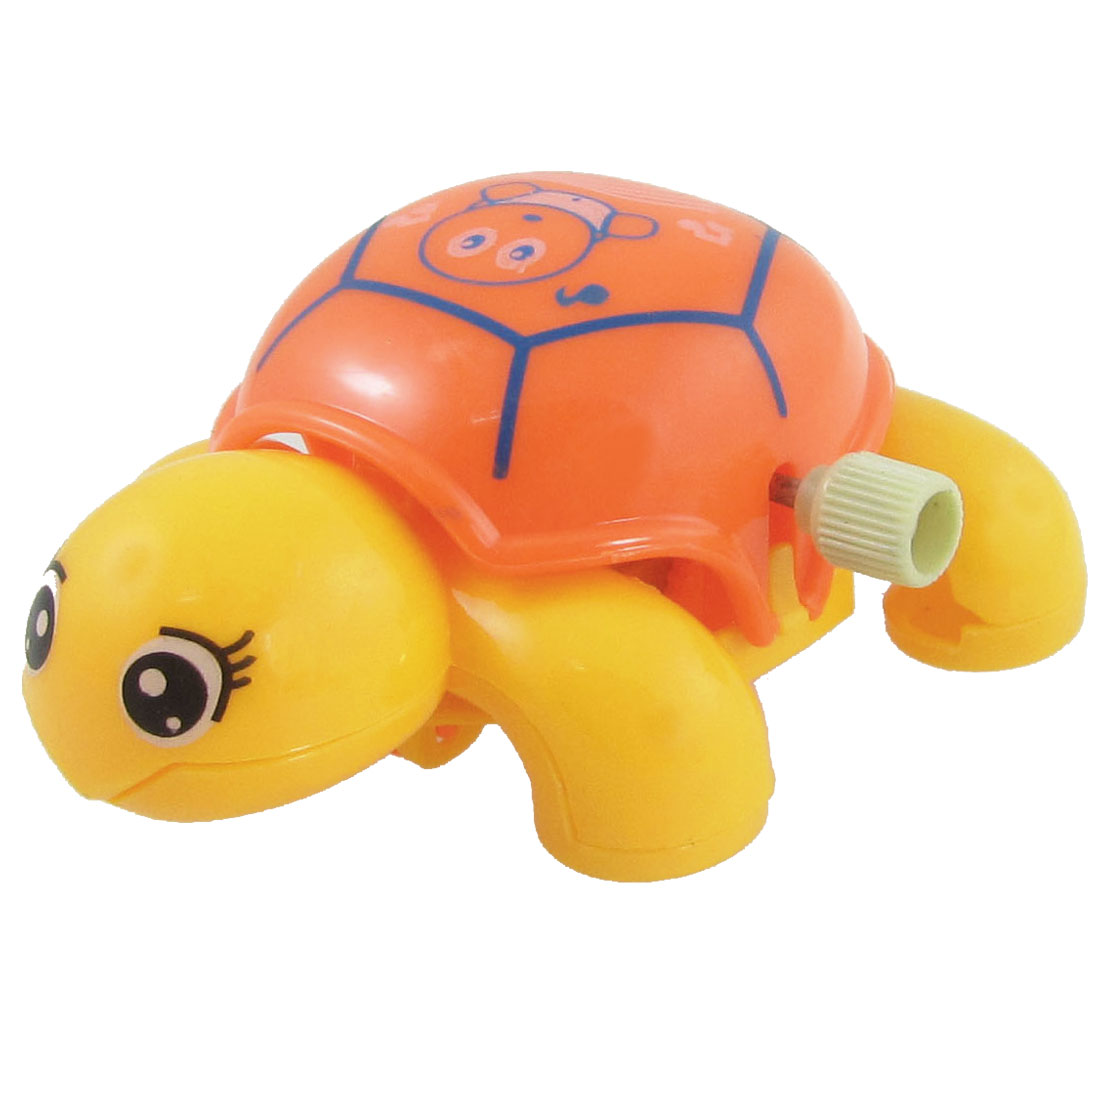 Children Orange Yellow Plastic Headshake Turtle Wind Up Clockwork Toy